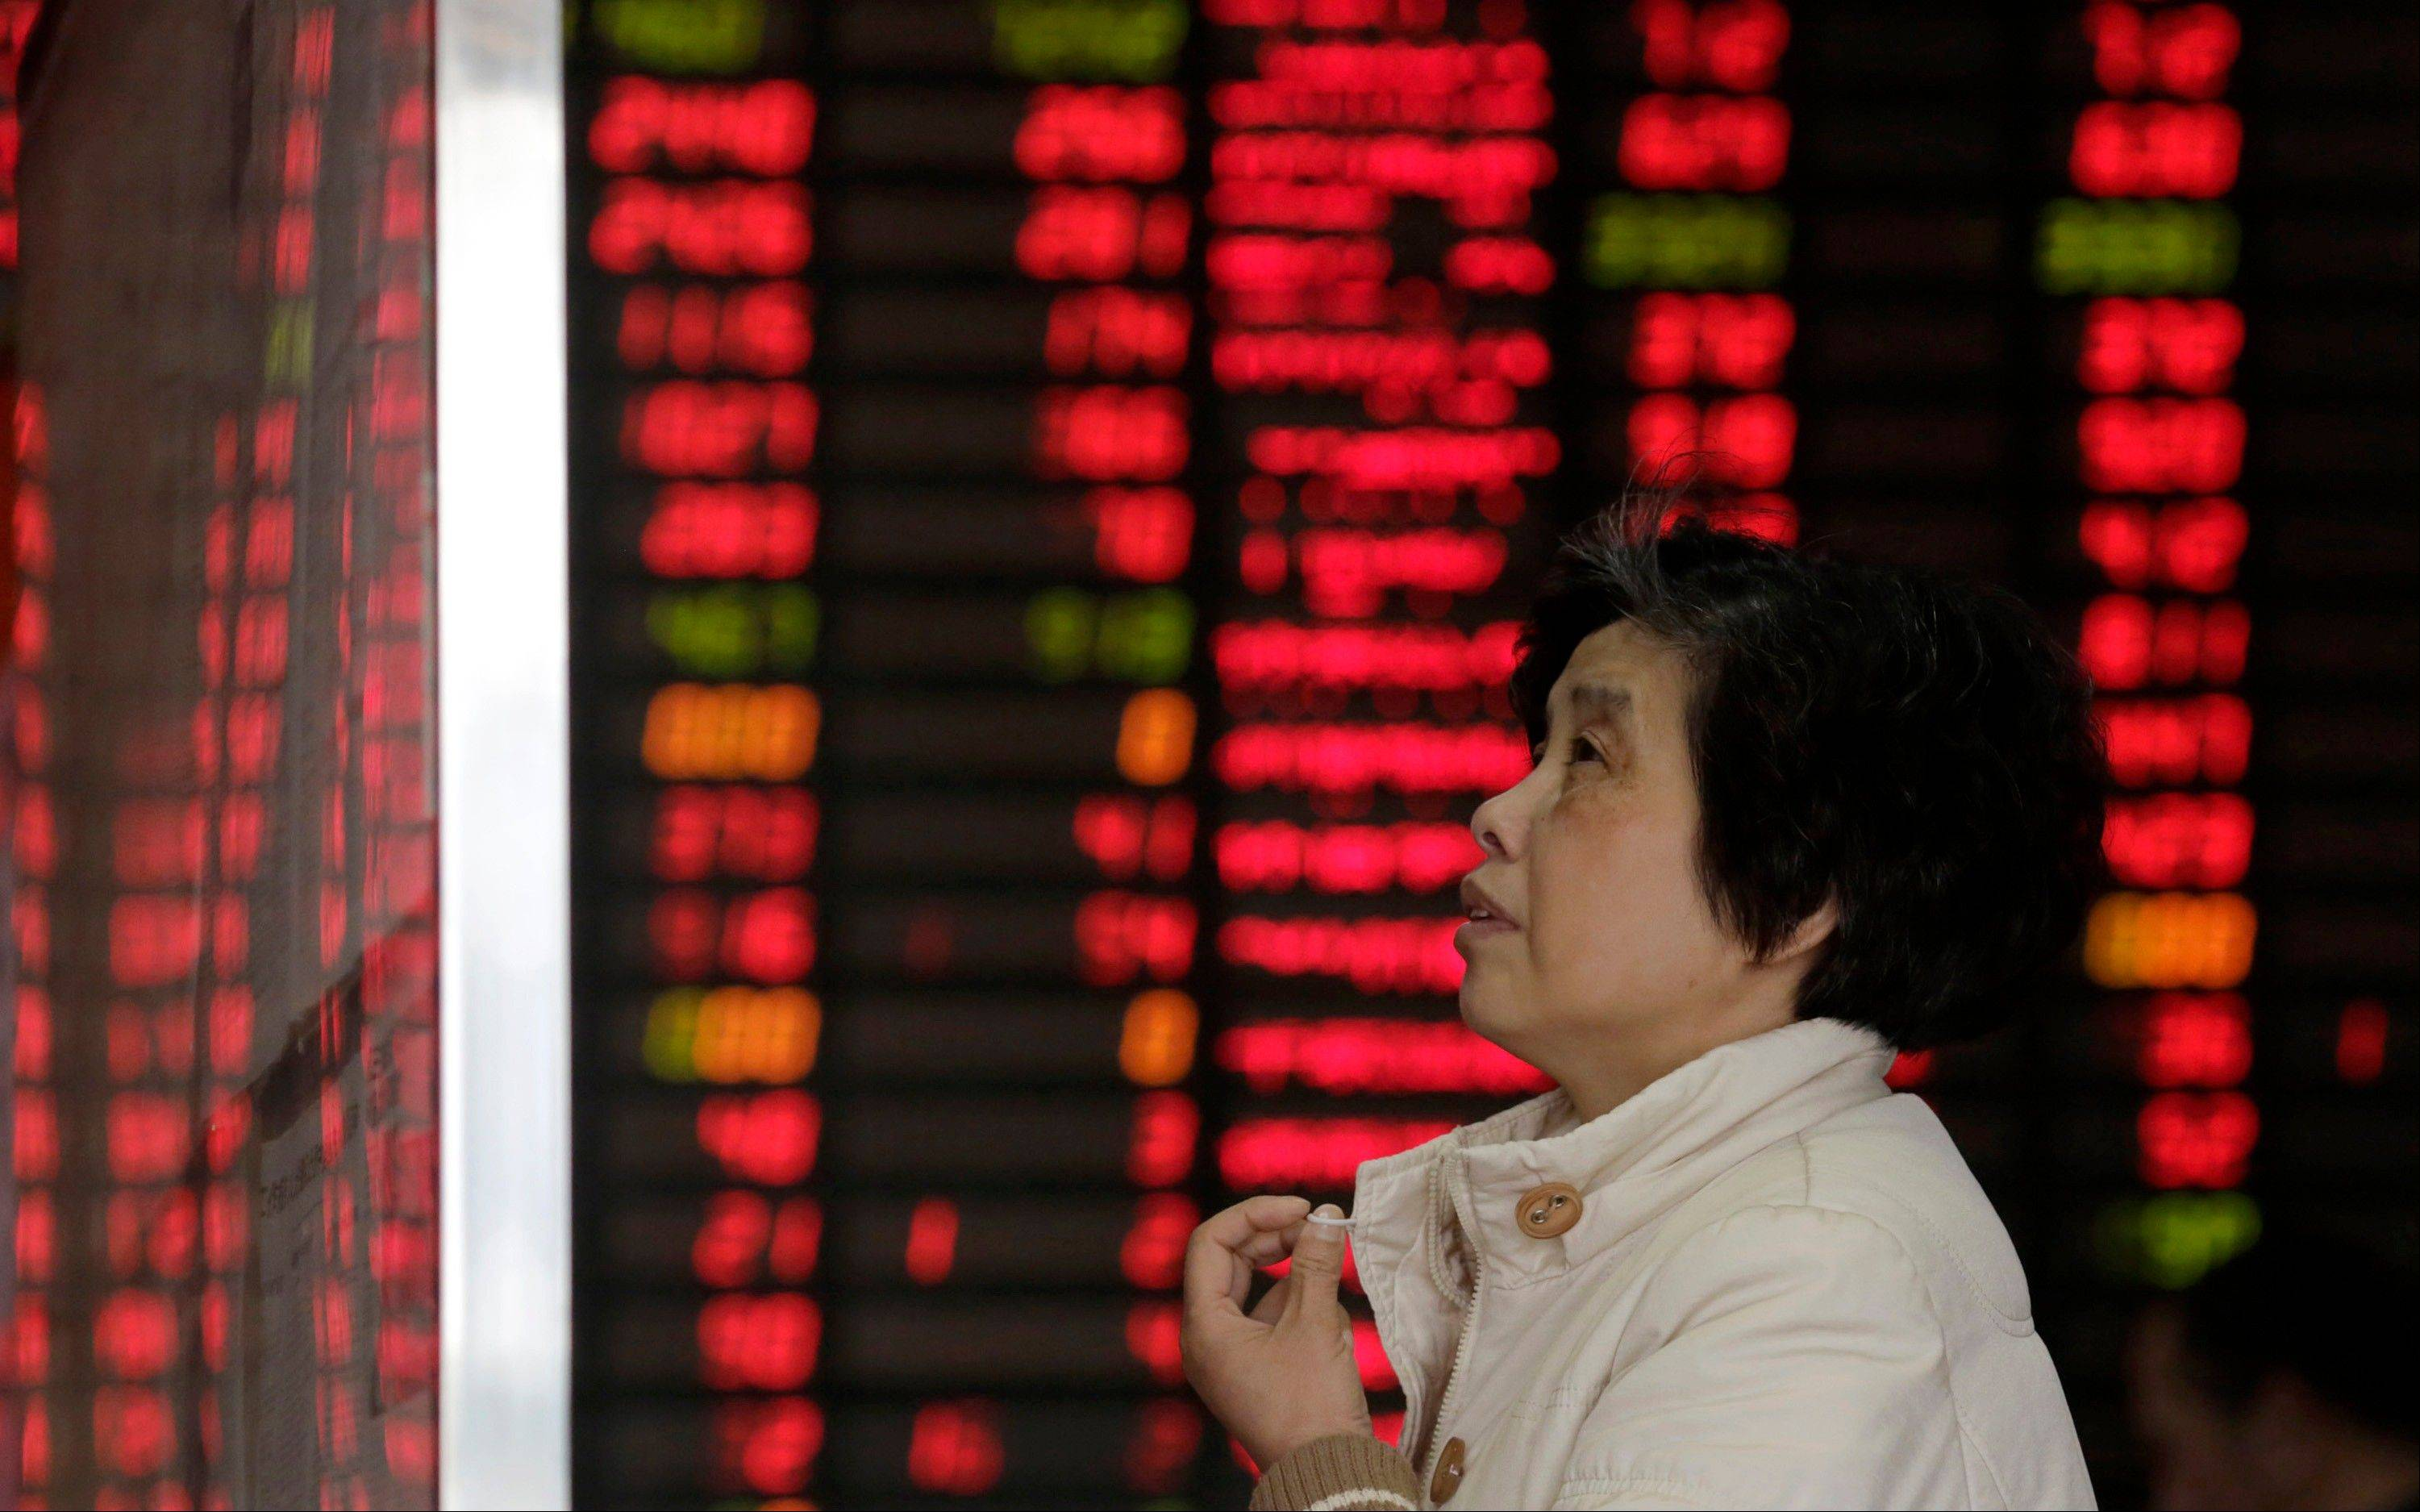 An investor looks at the stock bulletin board at a private securities company on Wednesday.